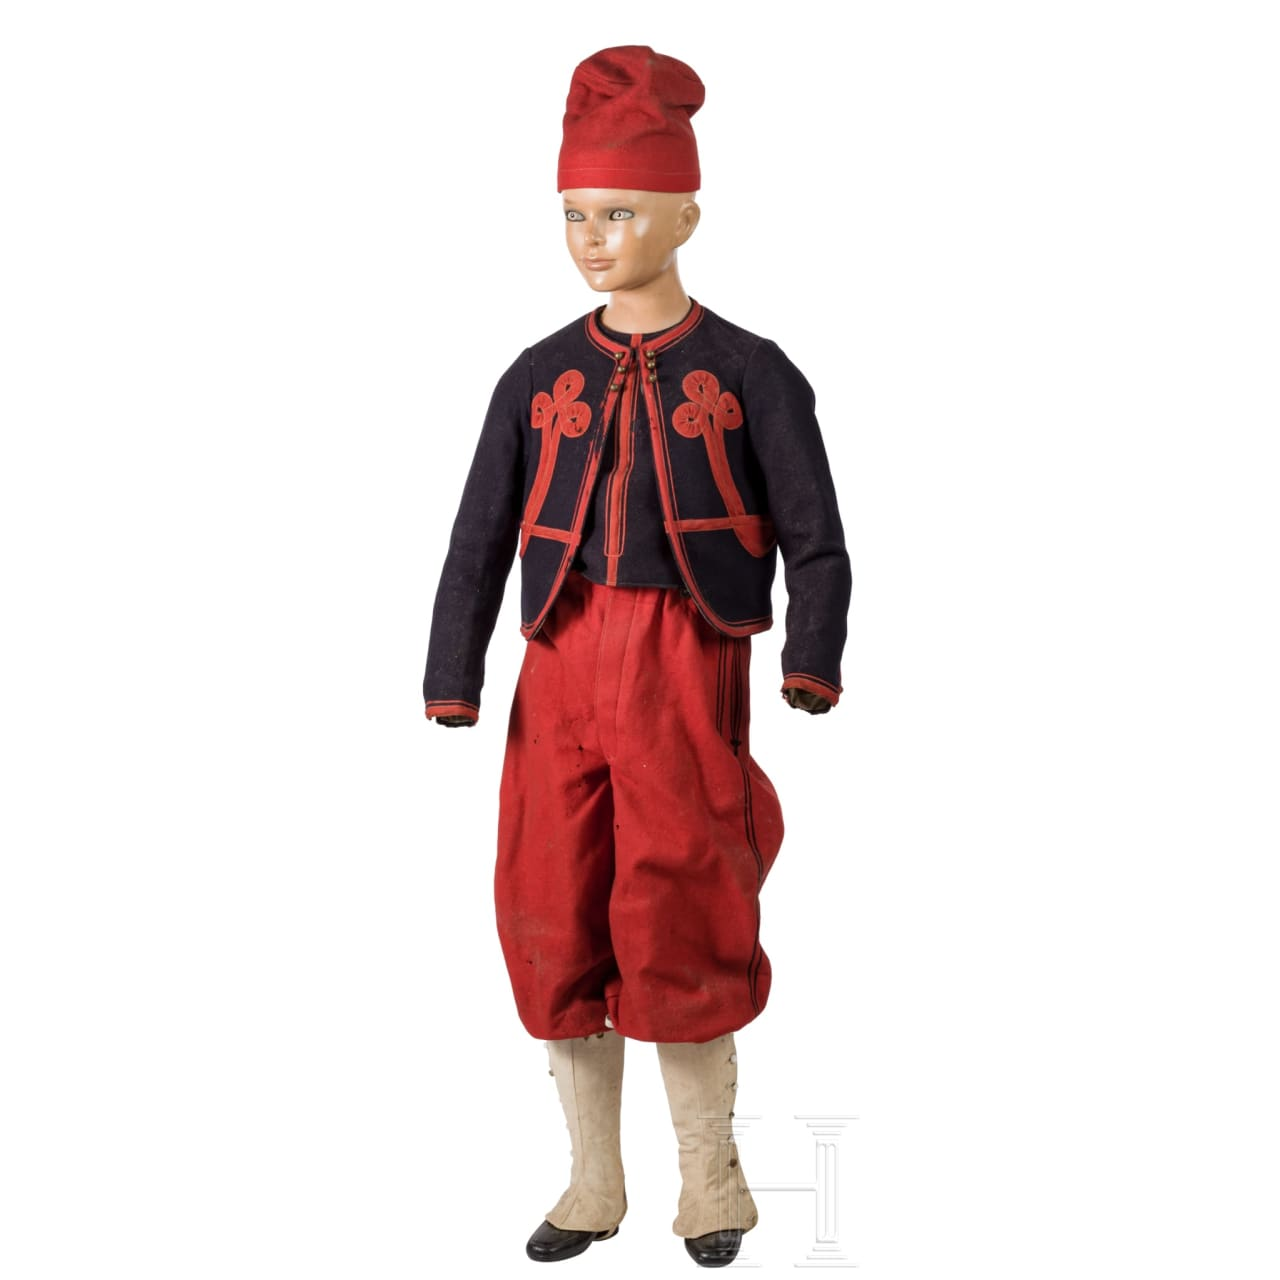 Zuaven-Kinderuniform, USA, 19. Jhdt.